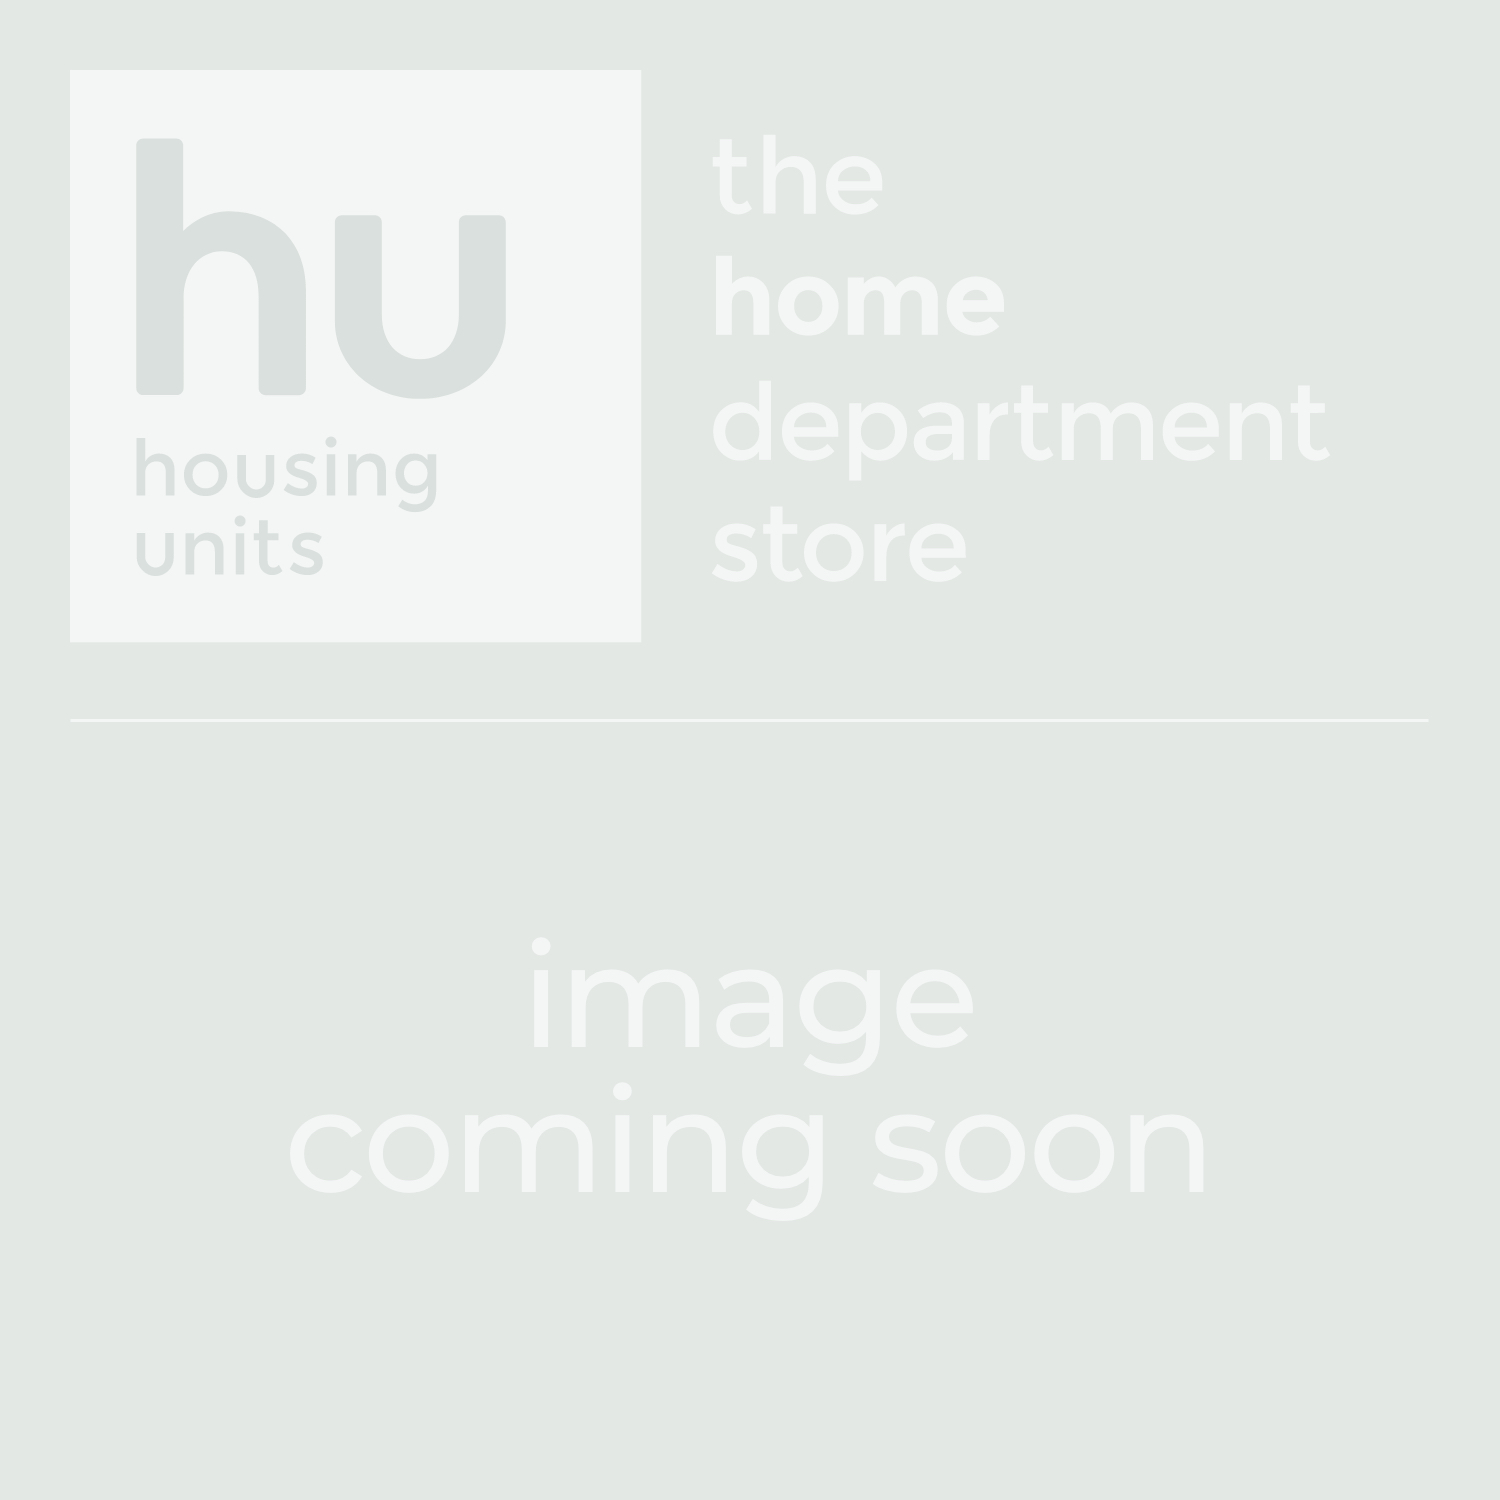 A beautiful piece with designer brands written on books with splashes of gold, black and white.